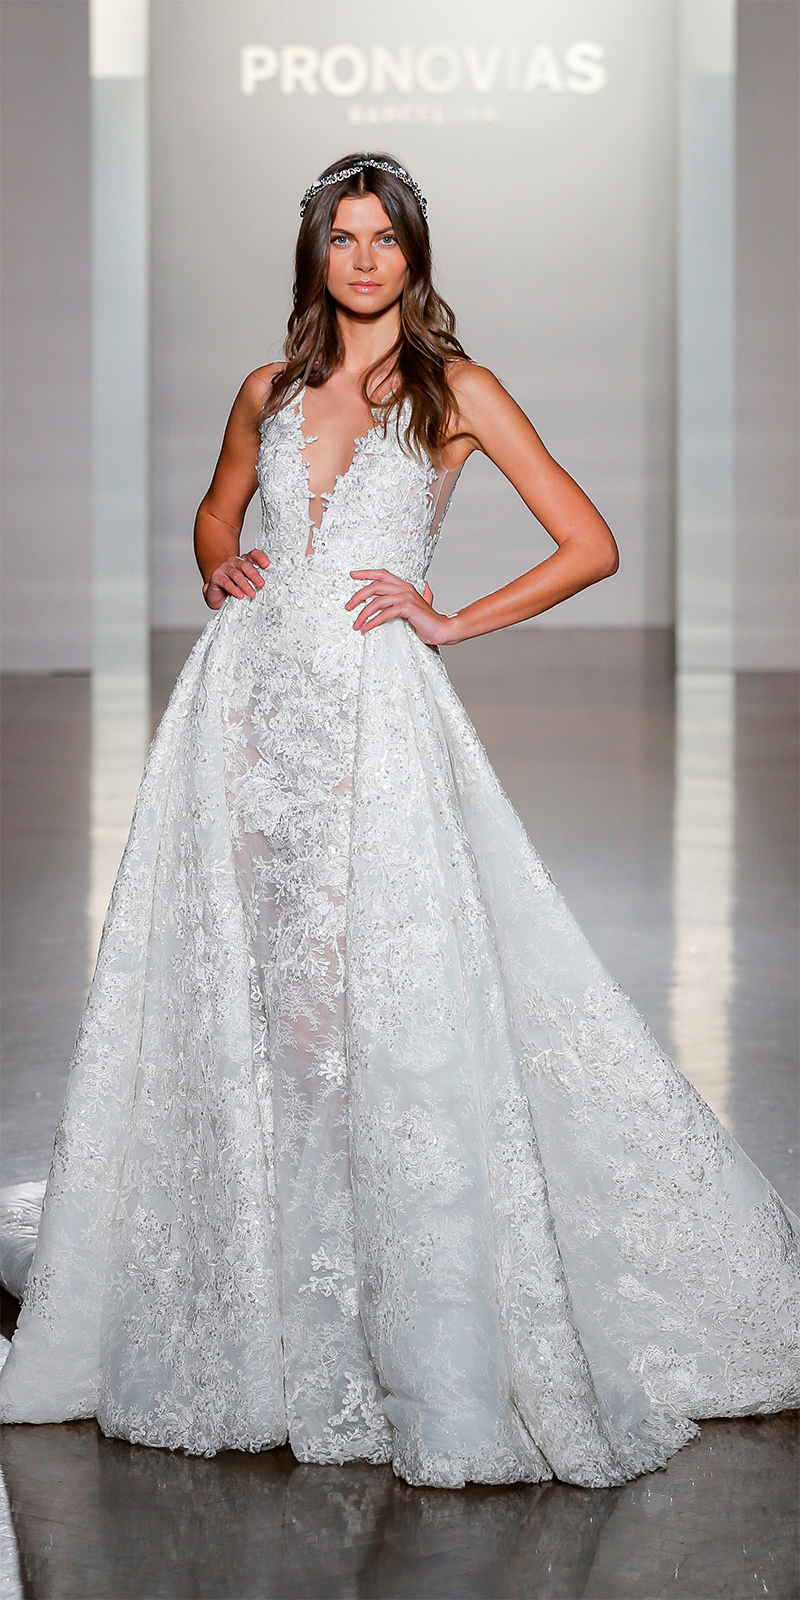 pronovias-ny-fashion-show_nilay